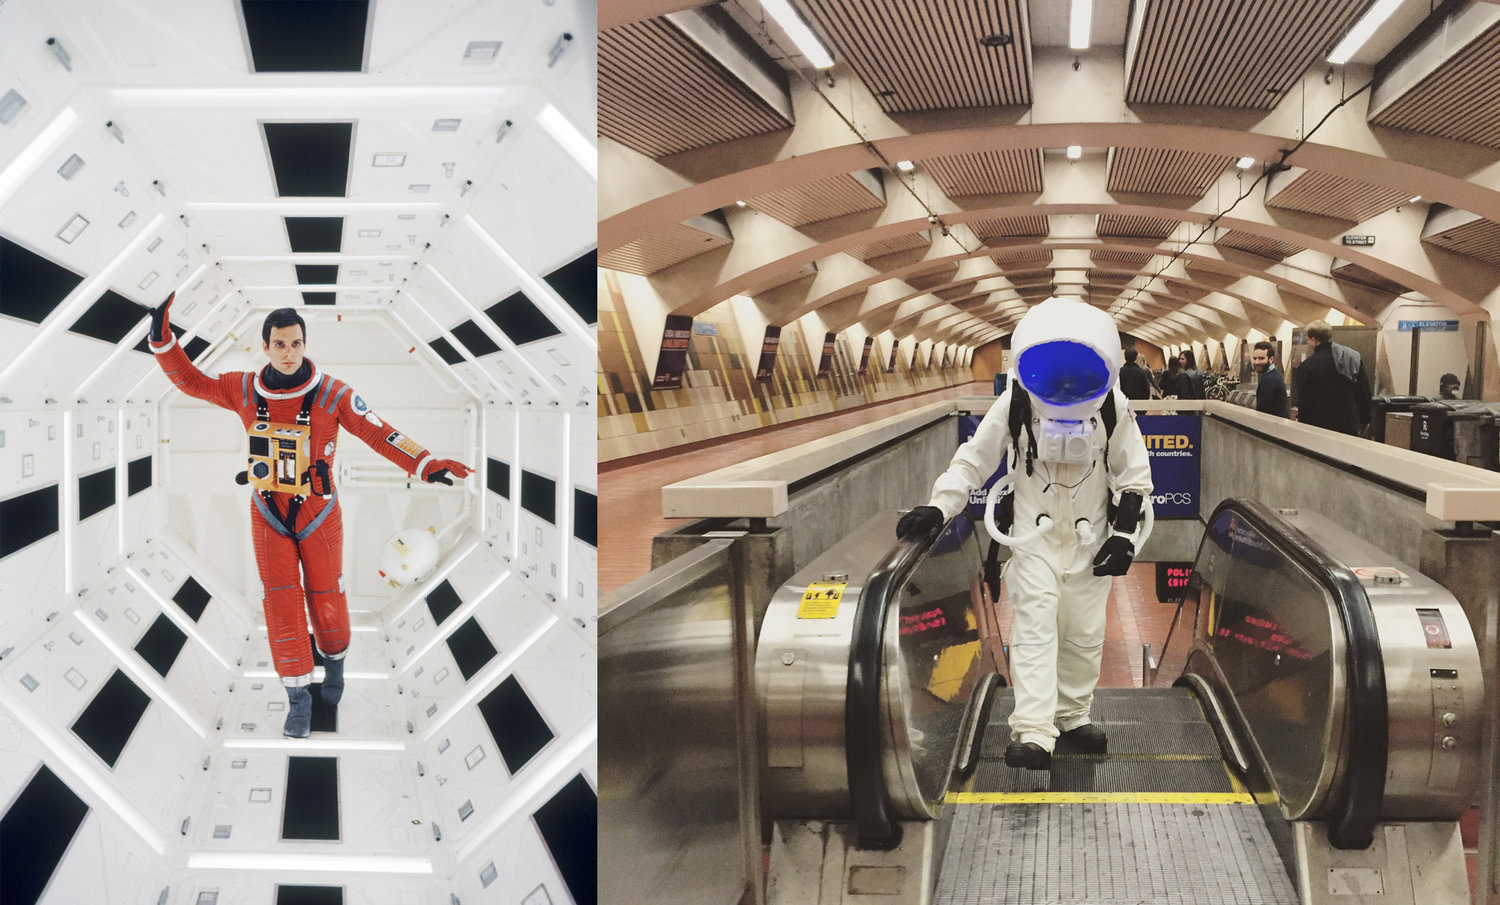 One of my early inspirations for the space suit was the image at left from Stanley Kubrick's 2001: A Space Odyssey. The following image was shot nearly a full month later on Halloween night. No efforts were made to mirror this scene, it came about naturally. In hindsight,seeing them side-by-side really speaks to the power of pre-visualization in any project. Photos from left: MGM, Heidi Lavelle